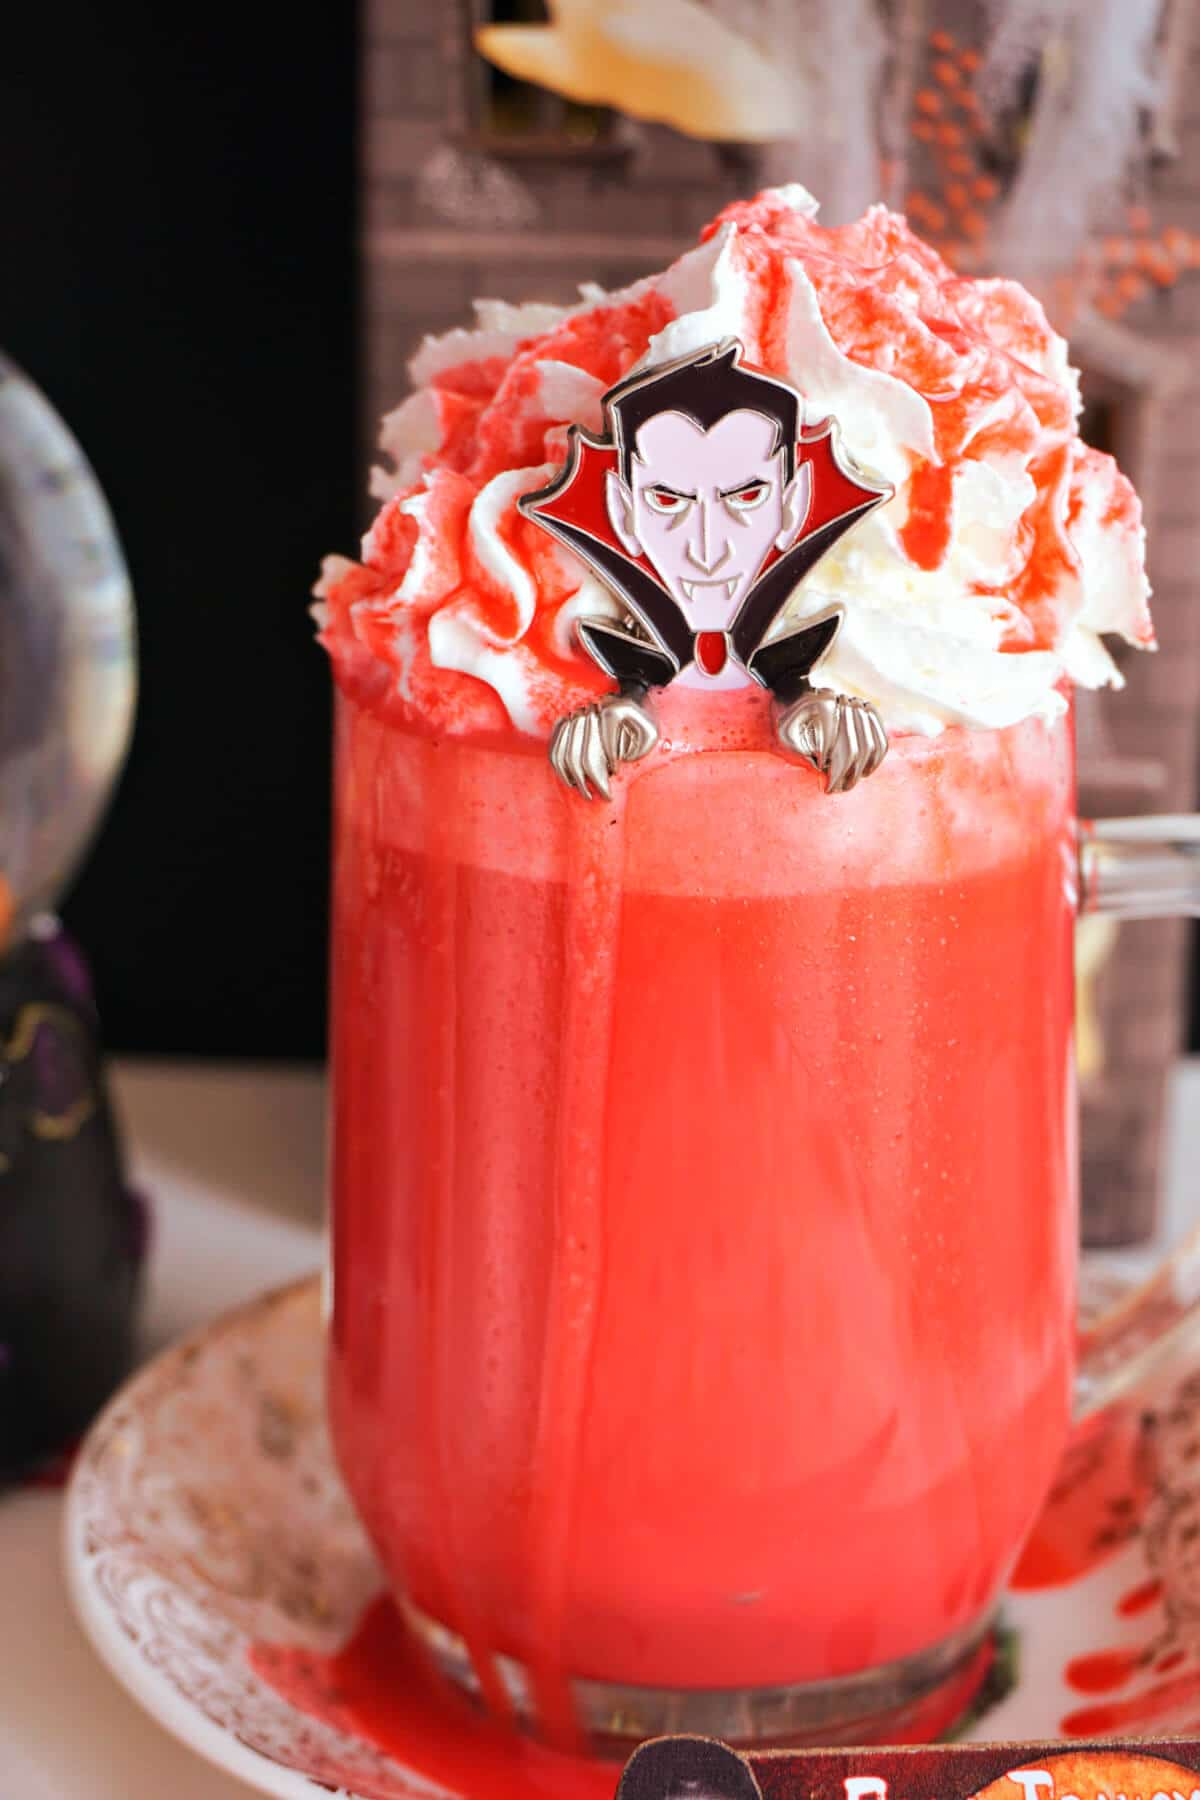 A glass of red hot chocolate with a dracula spoon in it